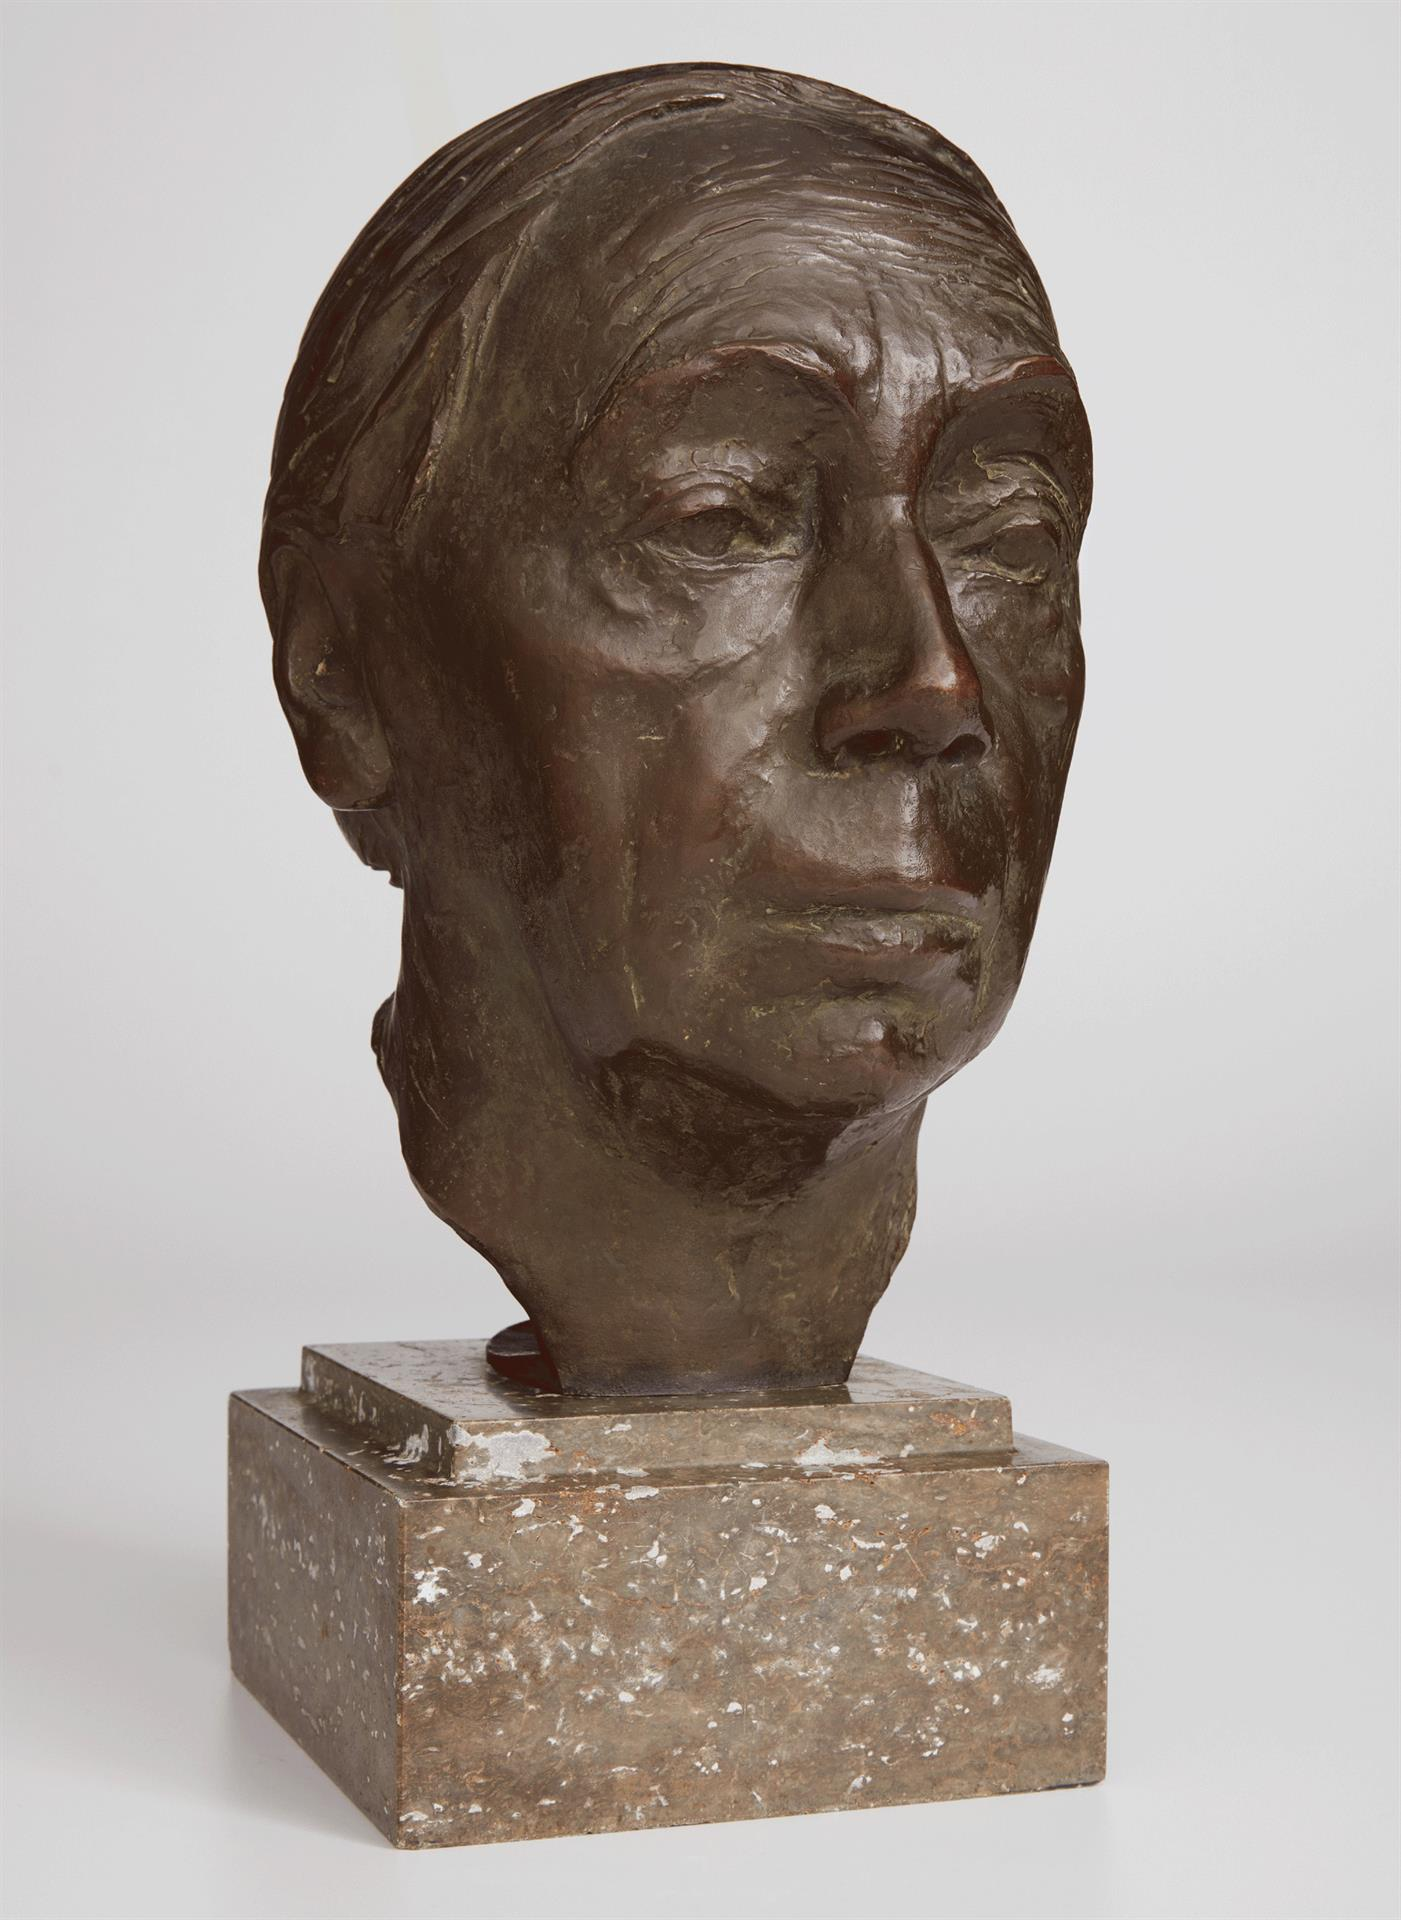 Käthe Kollwitz, Self-portrait, 1926-36, bronze, Seeler 26 I.B.3., Cologne Kollwitz Collection © Käthe Kollwitz Museum Köln